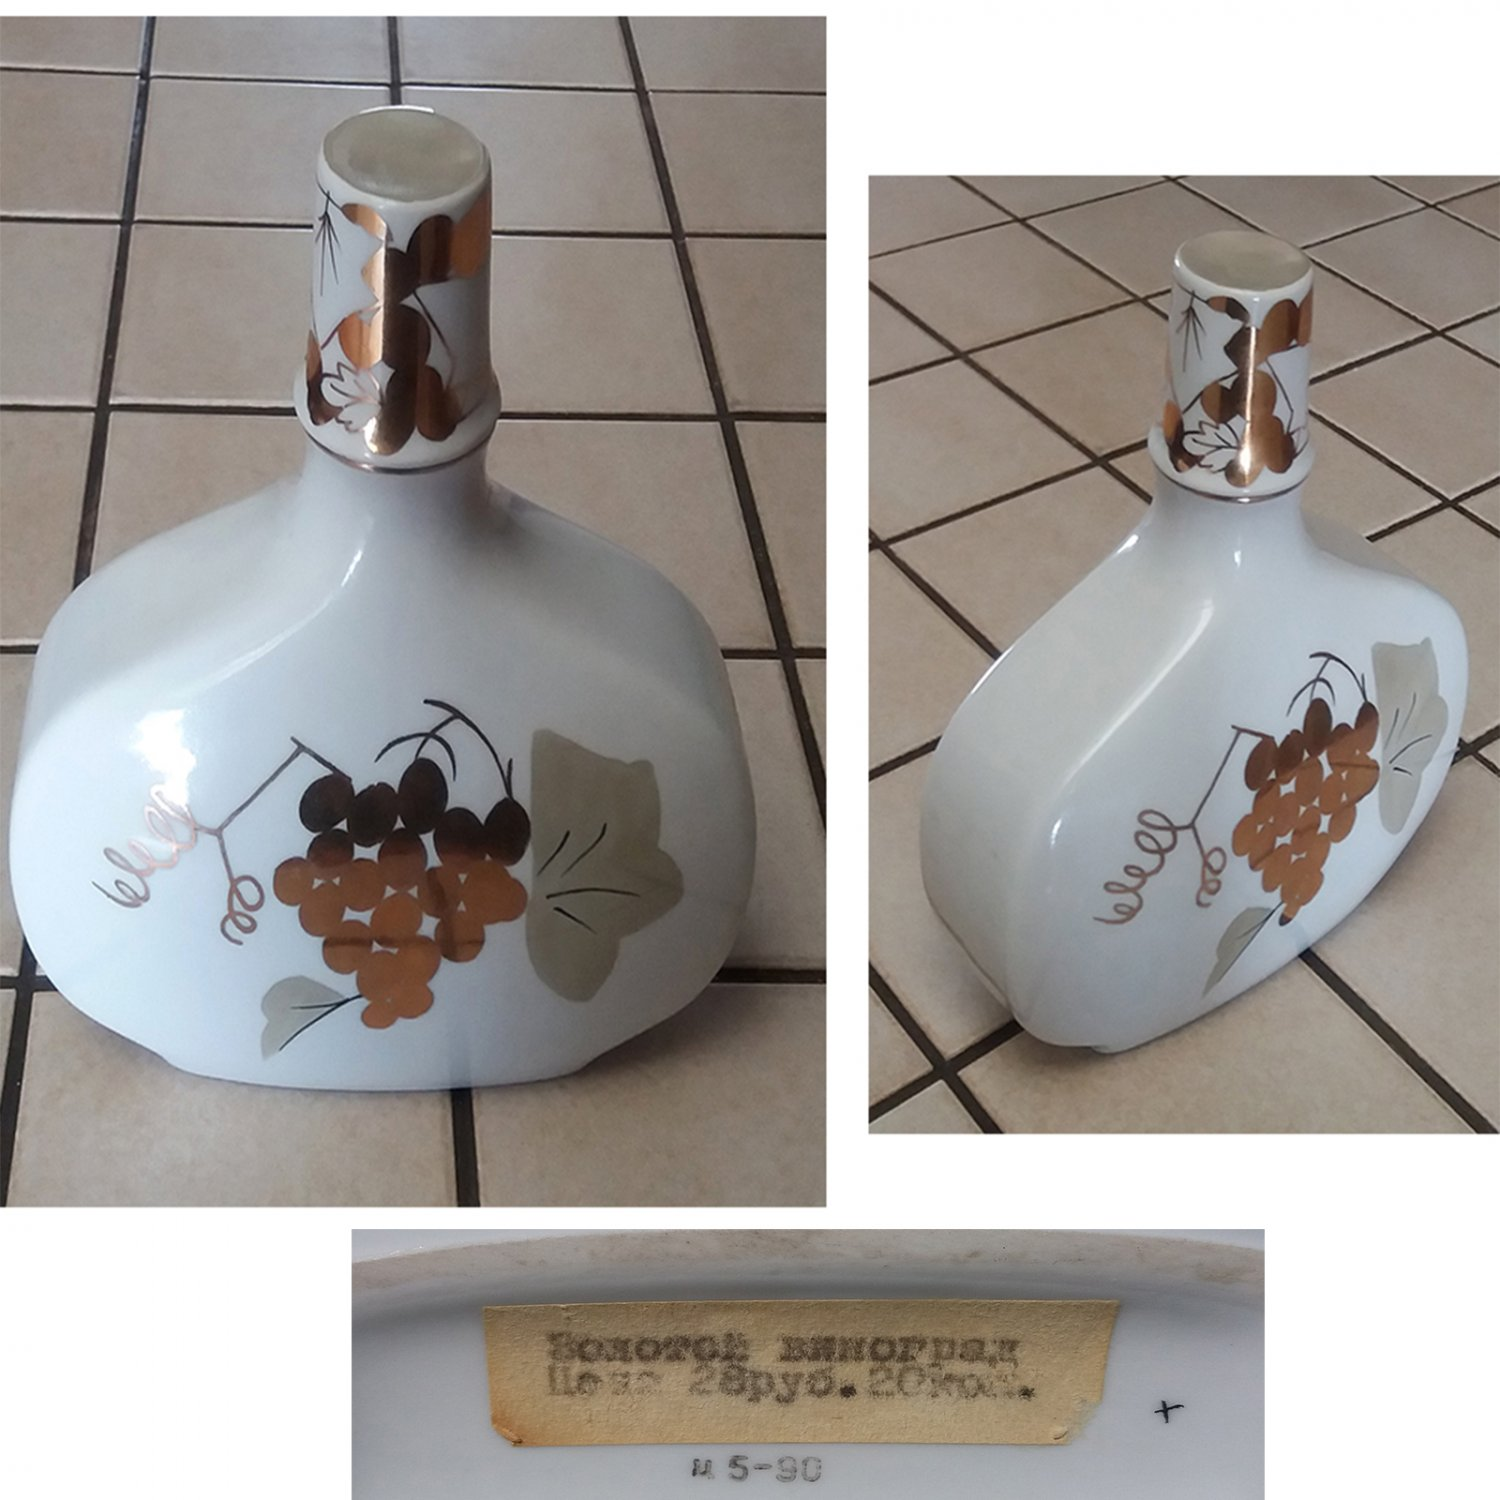 Vintage Ceramic Liquor Bottle from St Petersburg